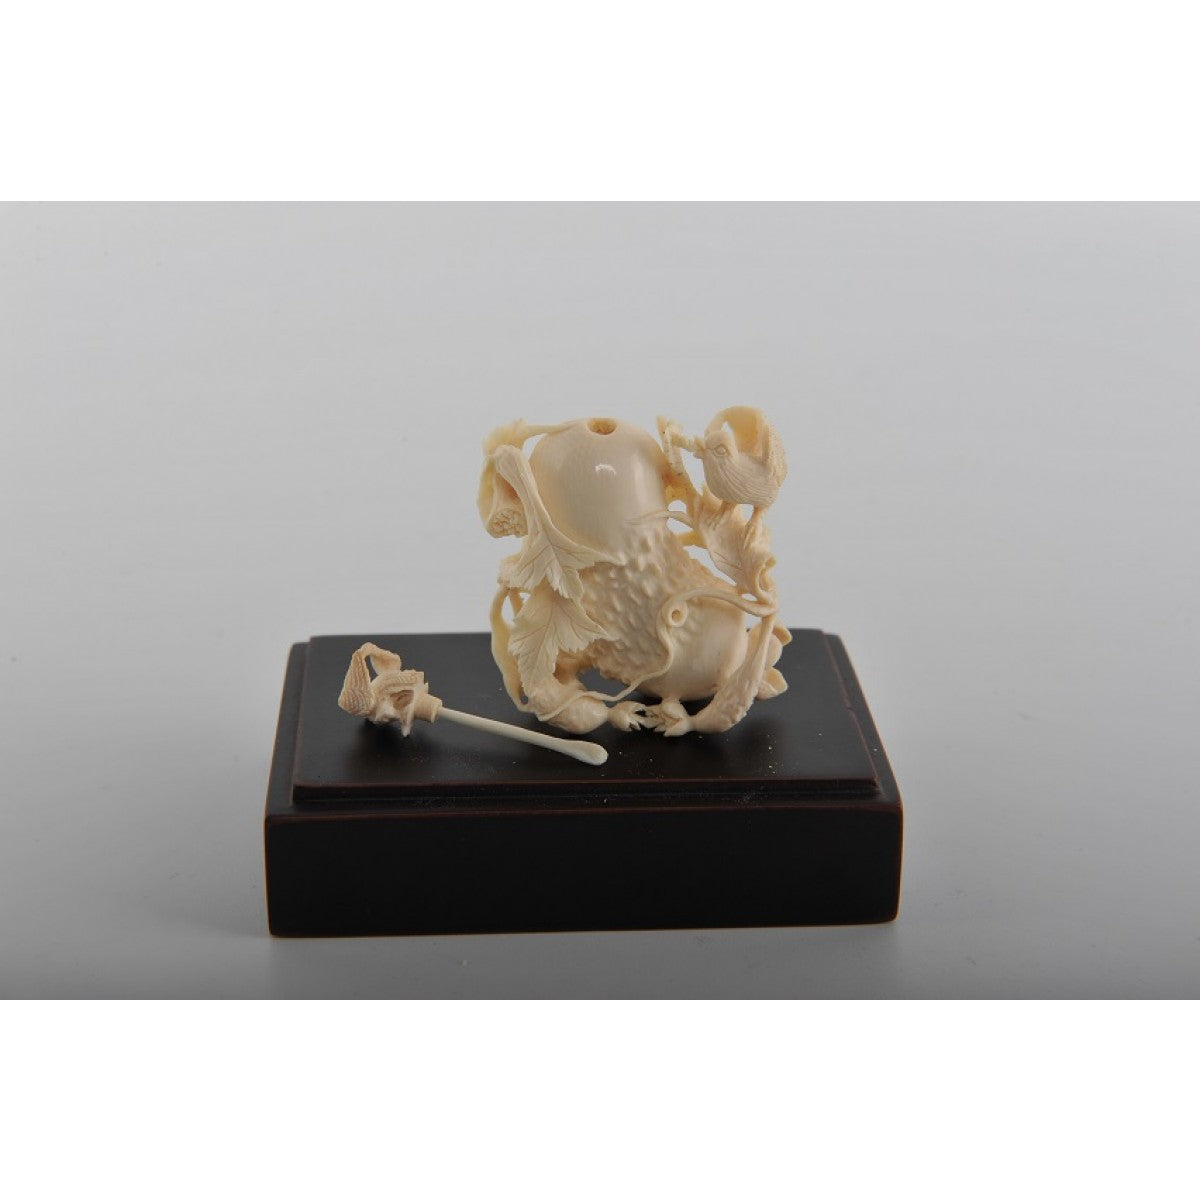 Mammoth Ivory- Snuff Bottle Peanut, Flower & Bird